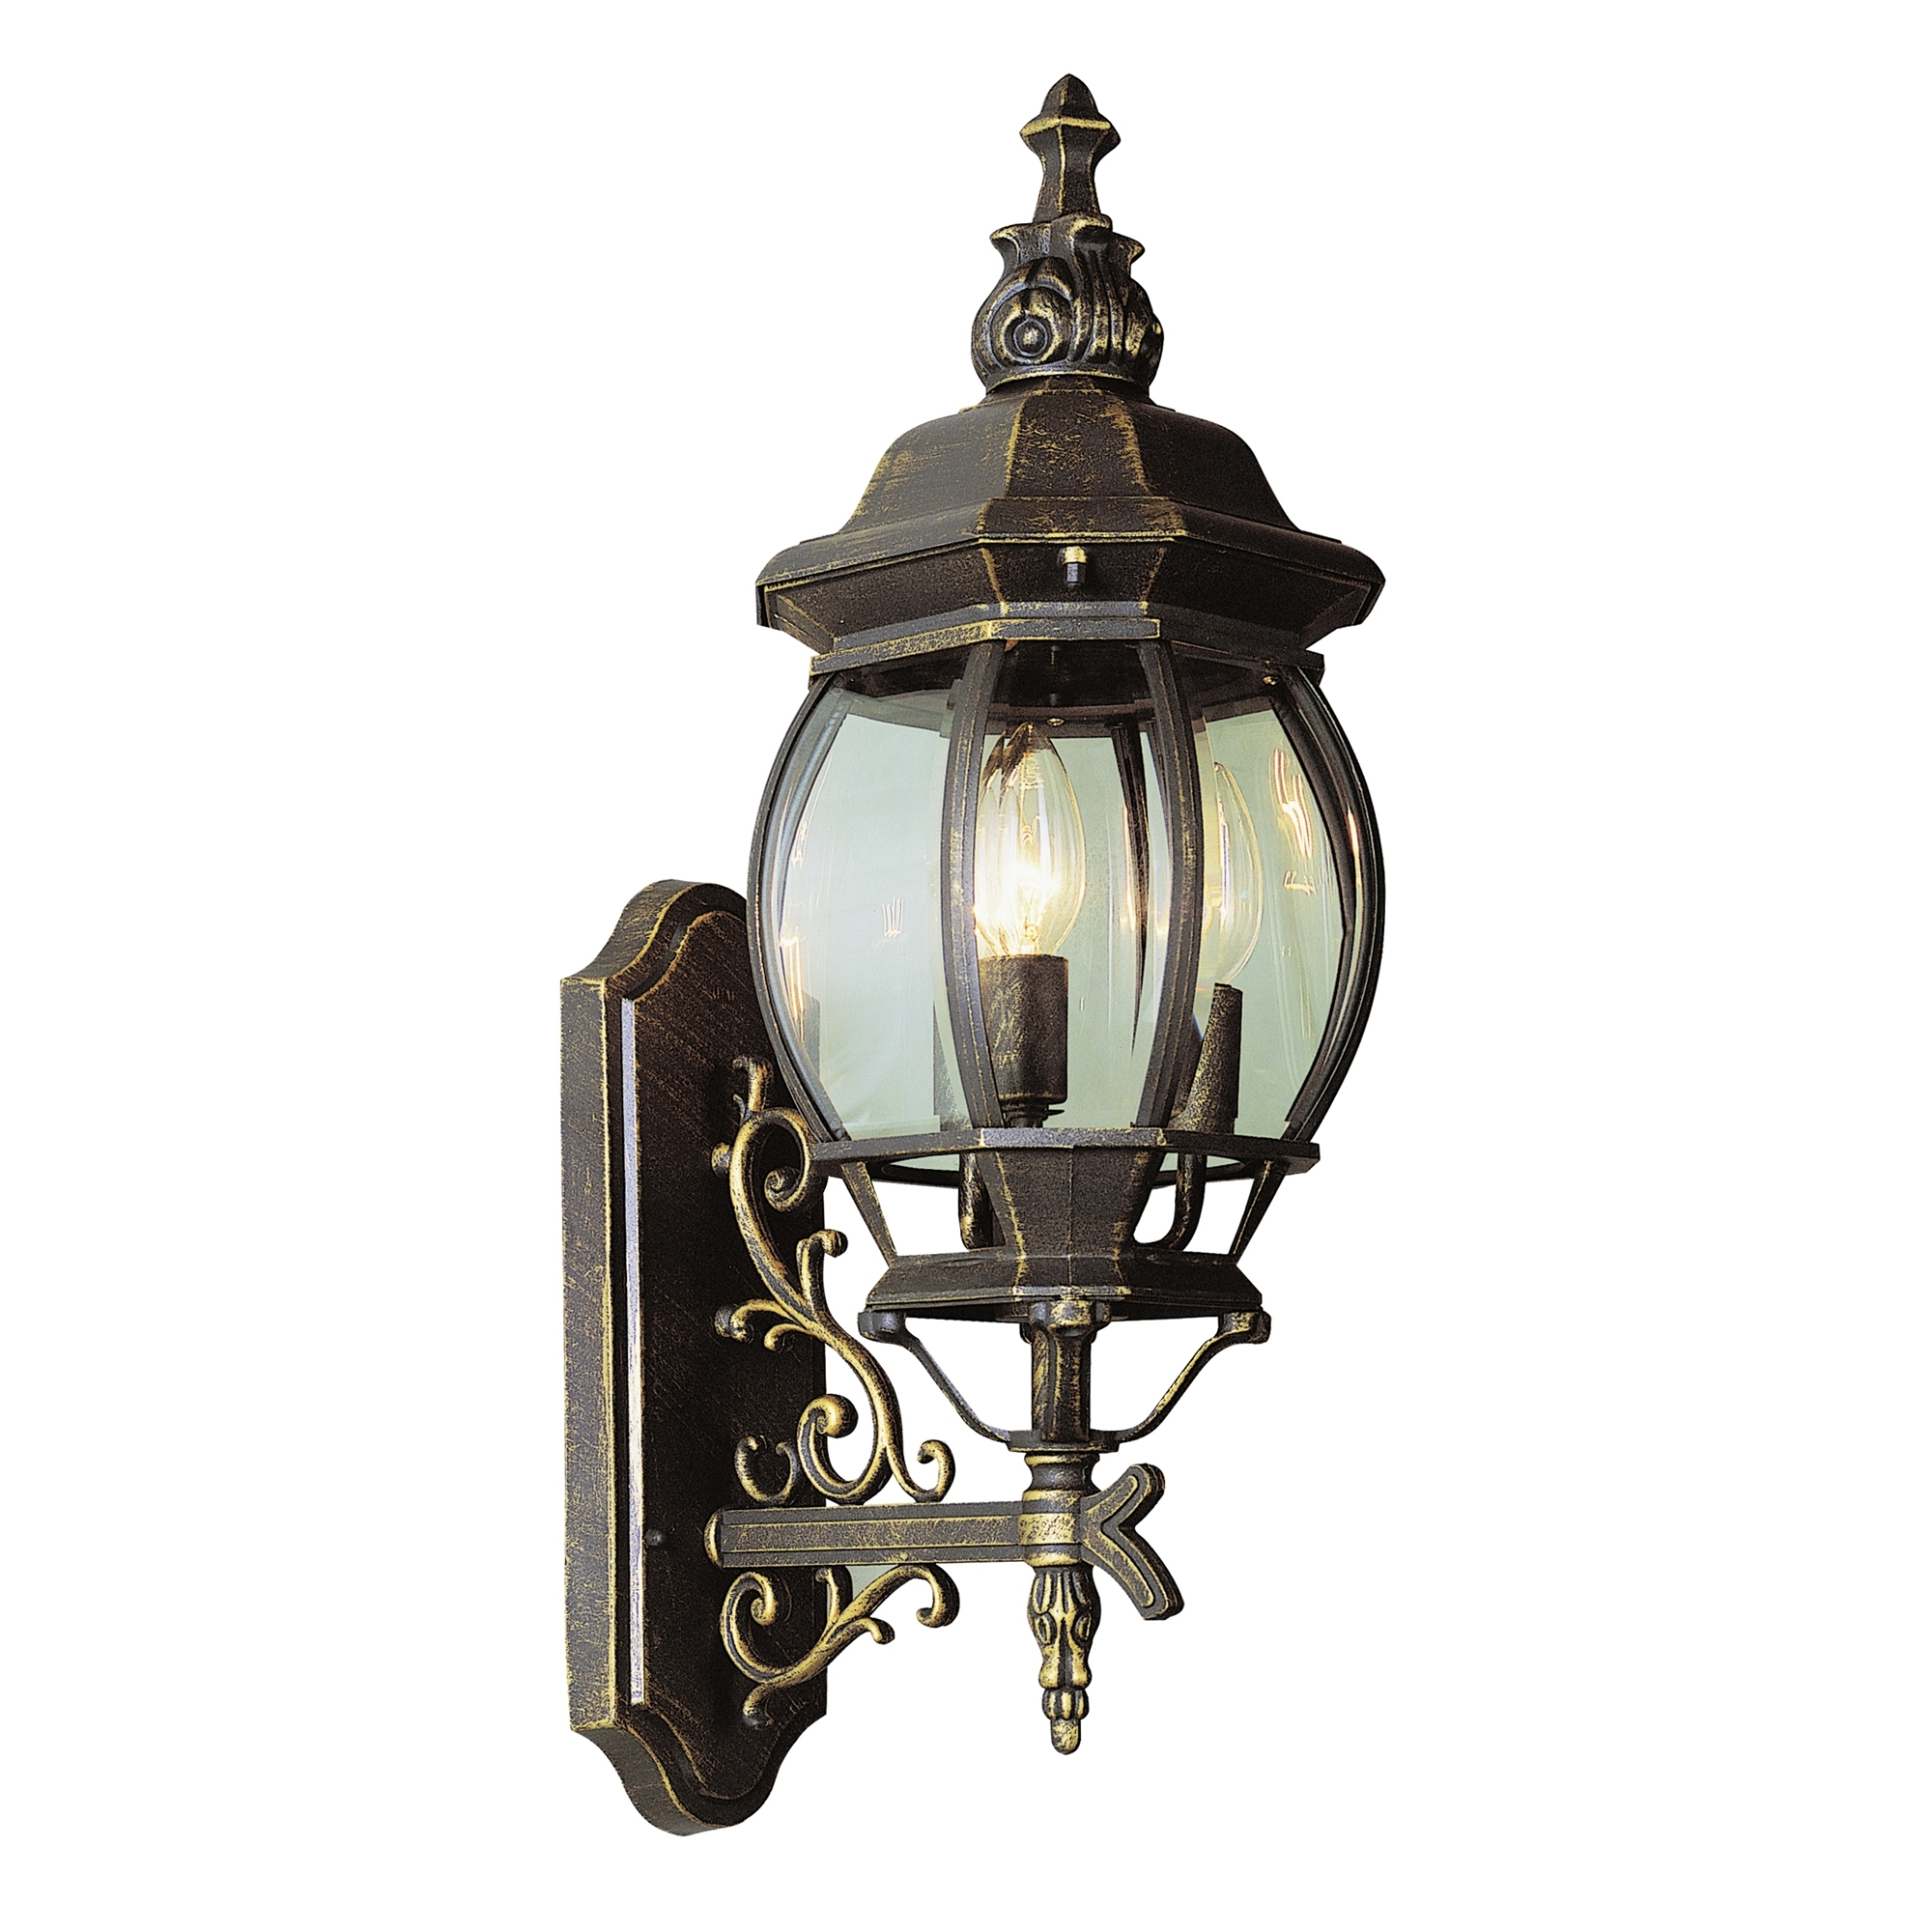 Outdoor Wall Lantern By Transglobe Lighting Within Most Recent Trans Globe 4051 Bg Rochelle Black Gold Outdoor Wall Sconce: Littman (View 7 of 20)